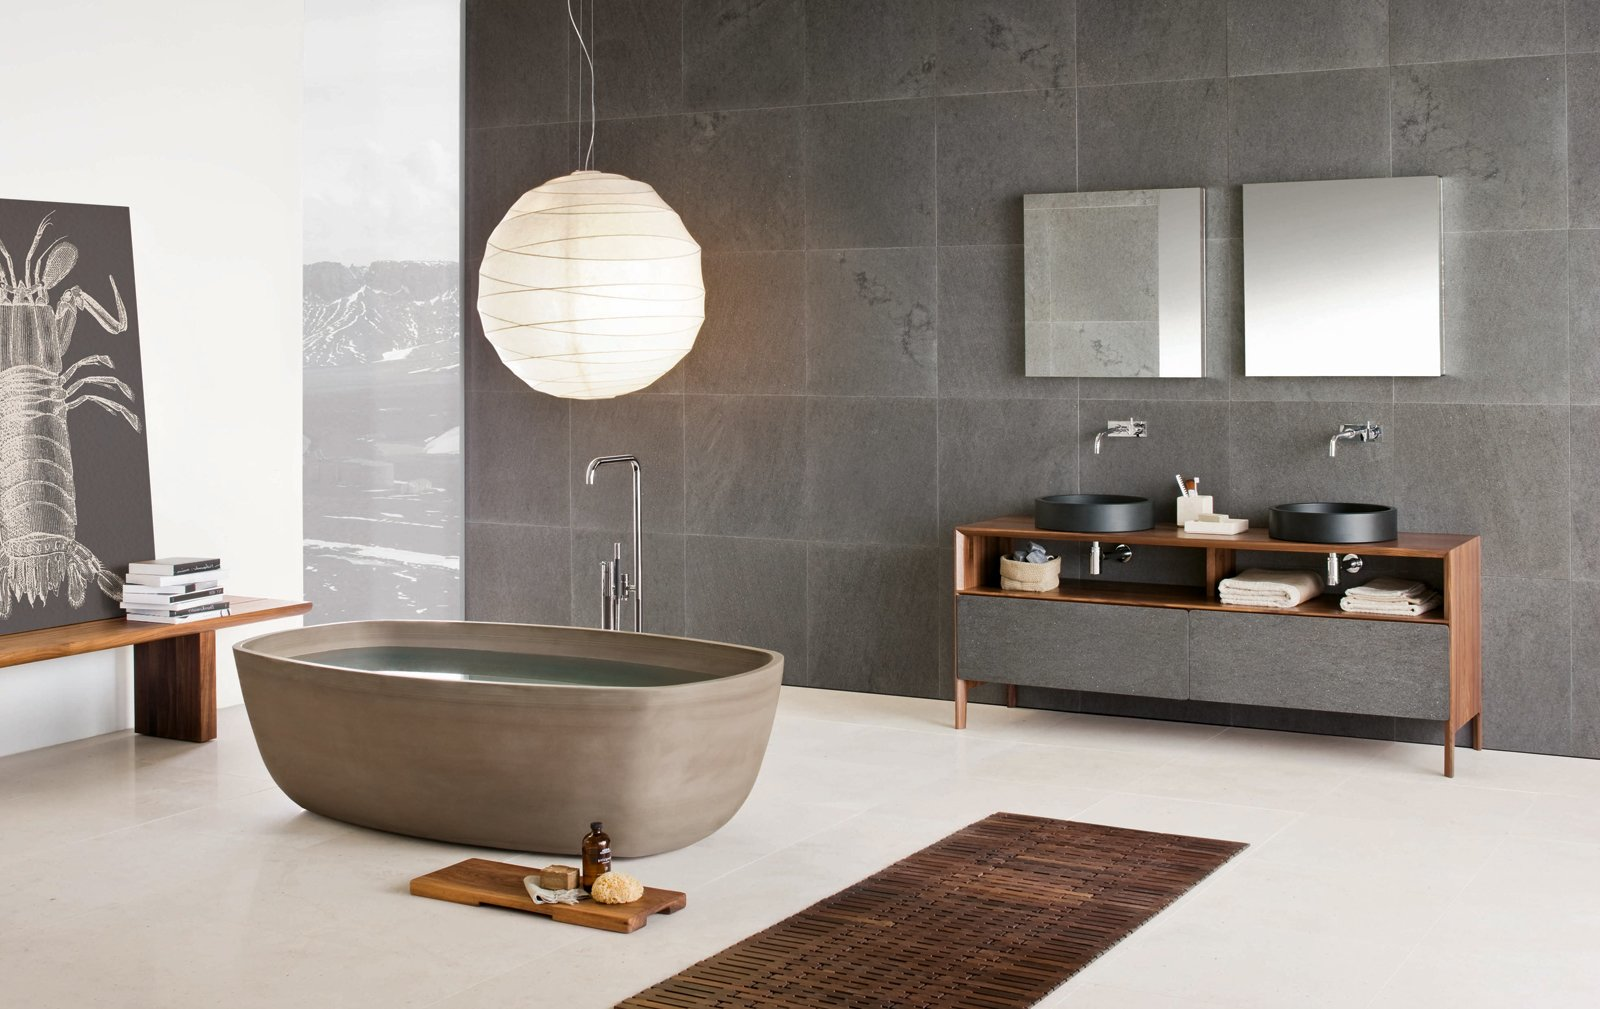 Inkstone bathtub in Sand Brown stone, Inkstone wash-basins, Black Rock stone, and Neos furniture (Neos furniture designed by Luca Martorano). Tagged: Bath Room, Freestanding Tub, Vessel Sink, and Wood Counter.  Best Photos from Inky Inspiration